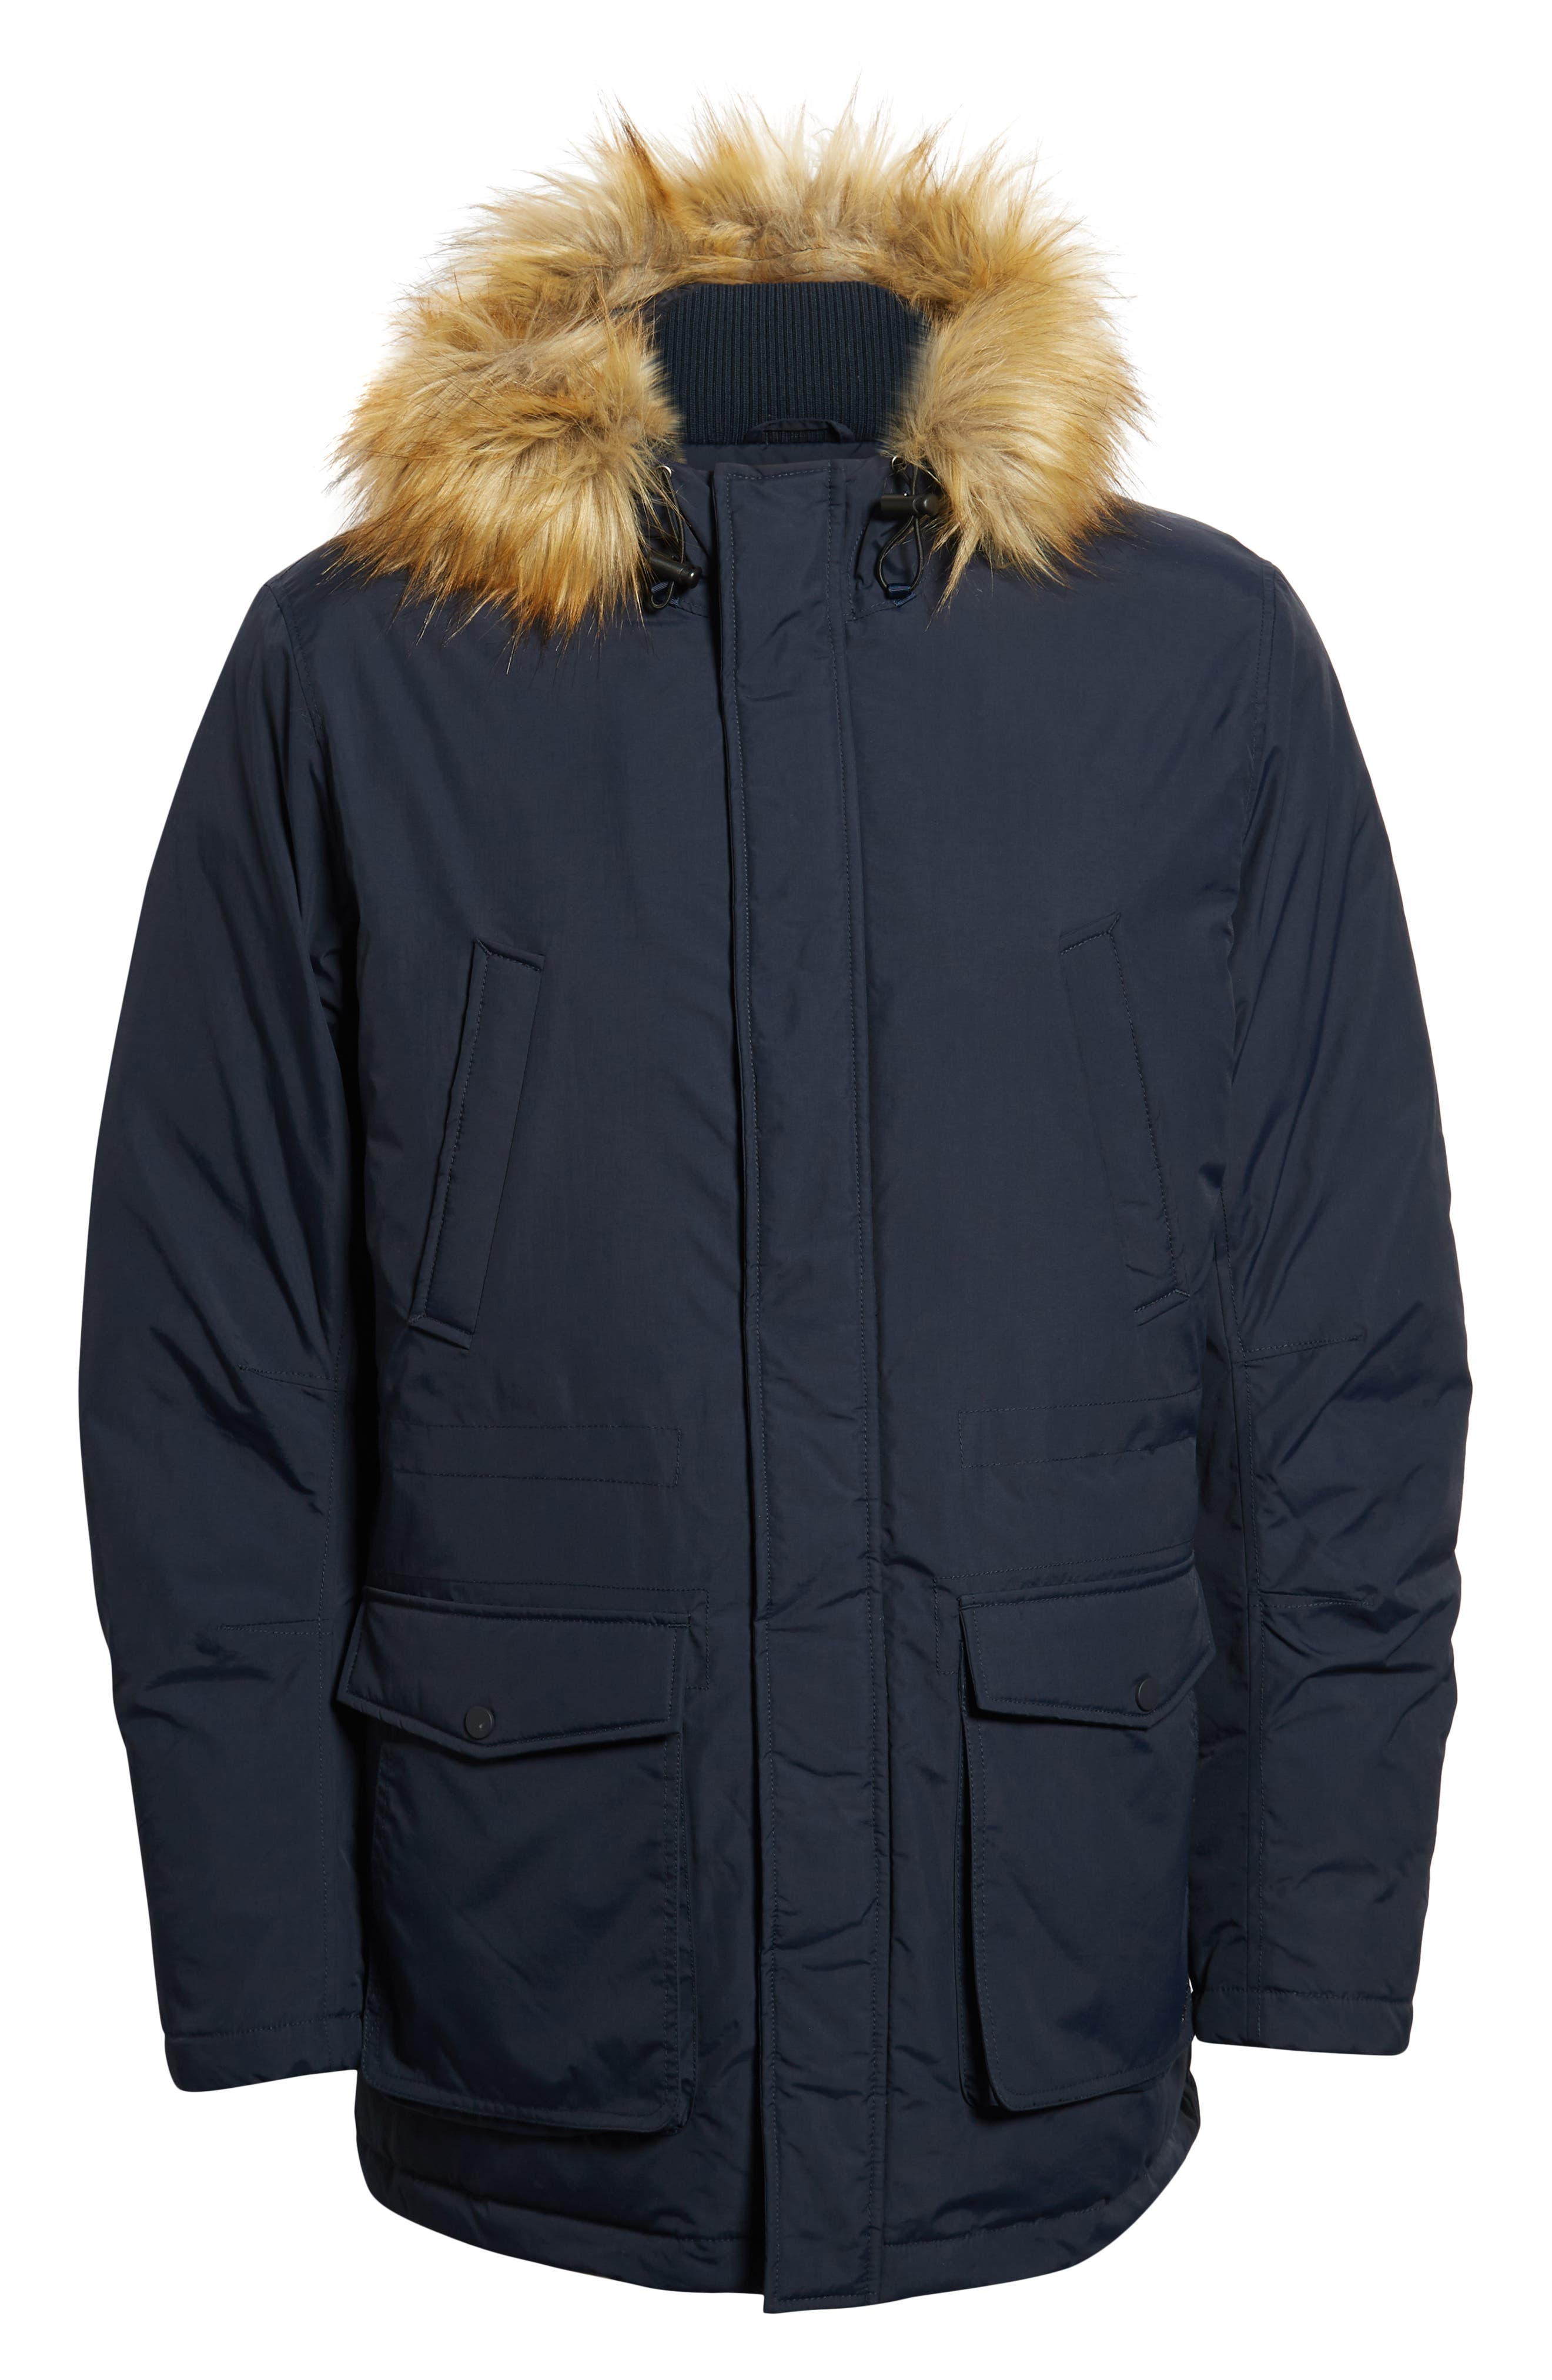 Insulated Parka with Faux Fur Trim,                             Alternate thumbnail 3, color,                             DARK SAPPHIRE